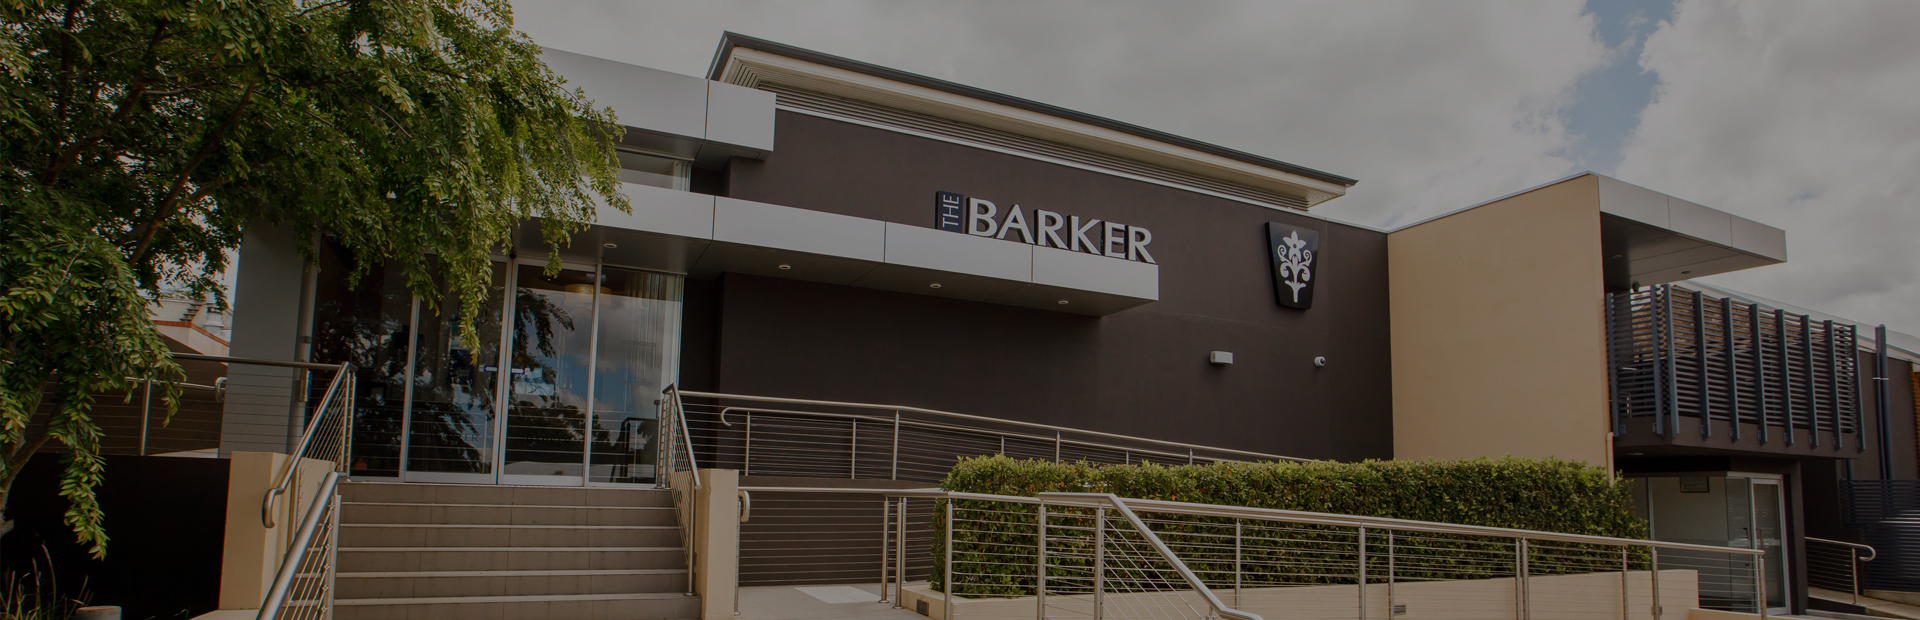 The Barker Hotel